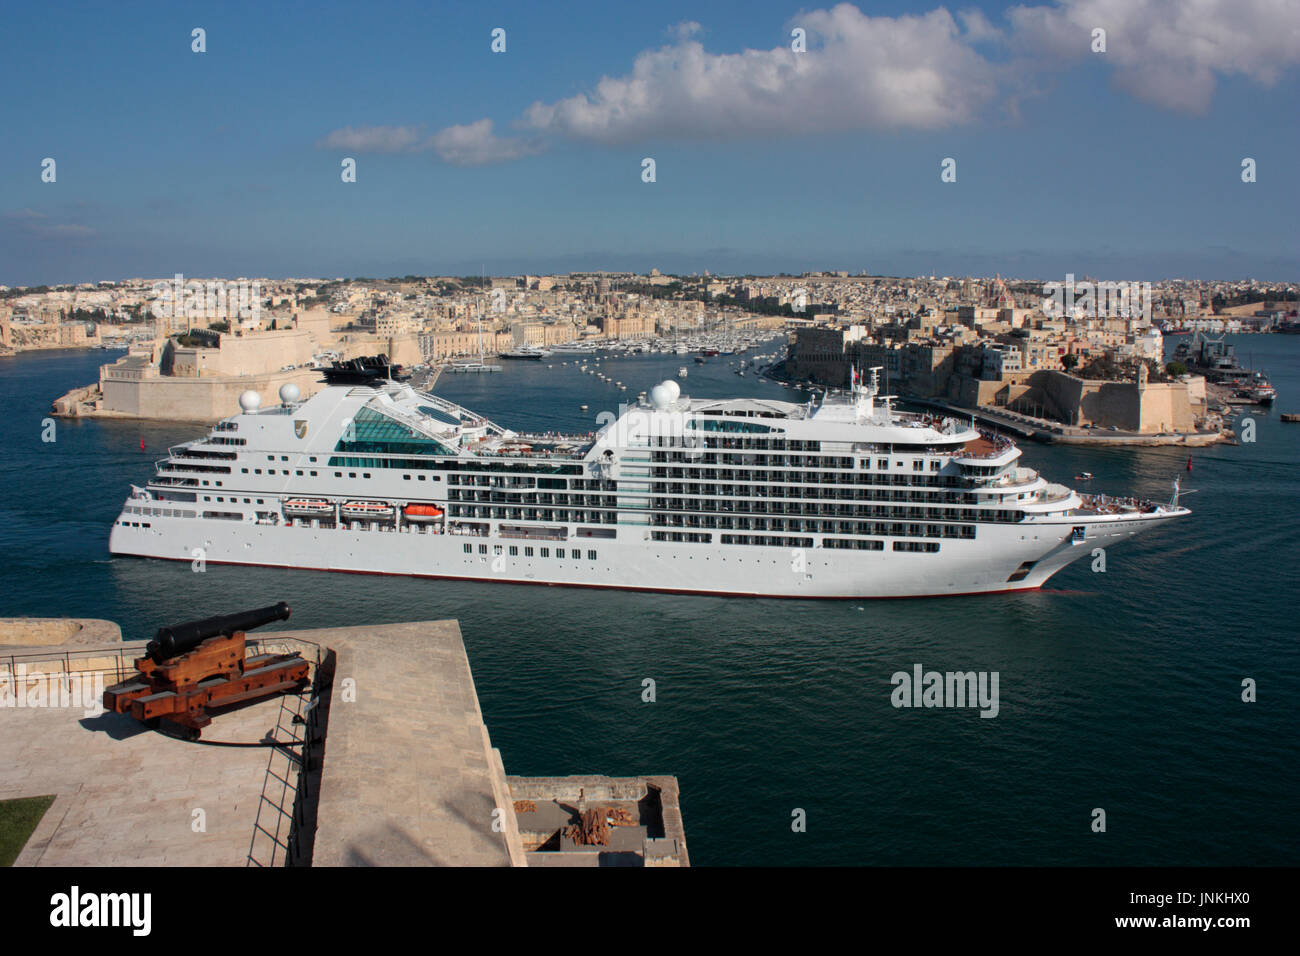 Mediterranean holiday travel and tourism. The modern cruise ship or liner Seabourn Encore entering the Grand Harbour in Malta, Europe - Stock Image